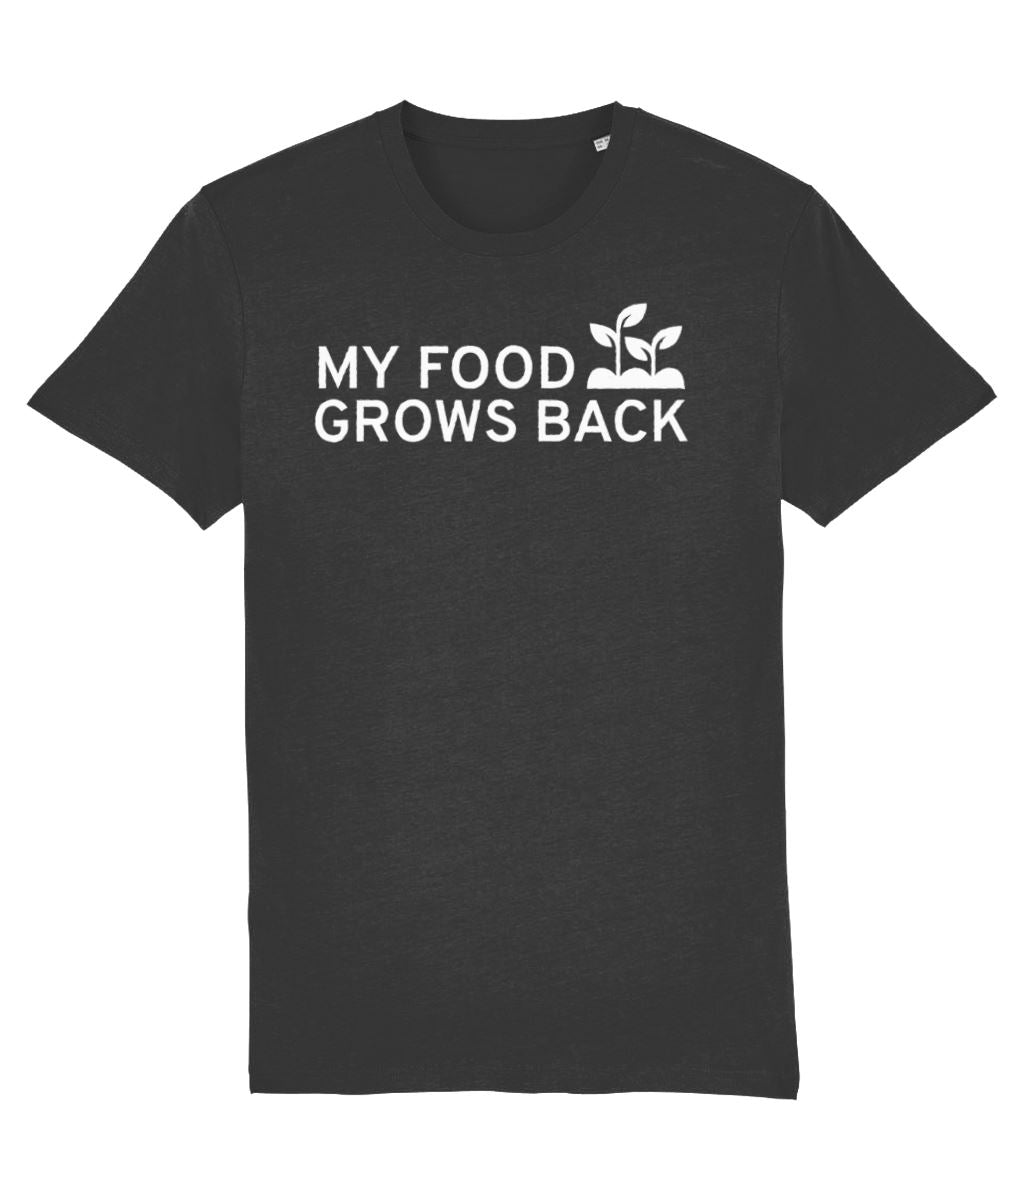 """My Food Grows Back"" Vegan T-Shirt - 100% Organic Cotton (Unisex) - Dark Clothing Vegan Original Dark Heather Grey XX-Small"